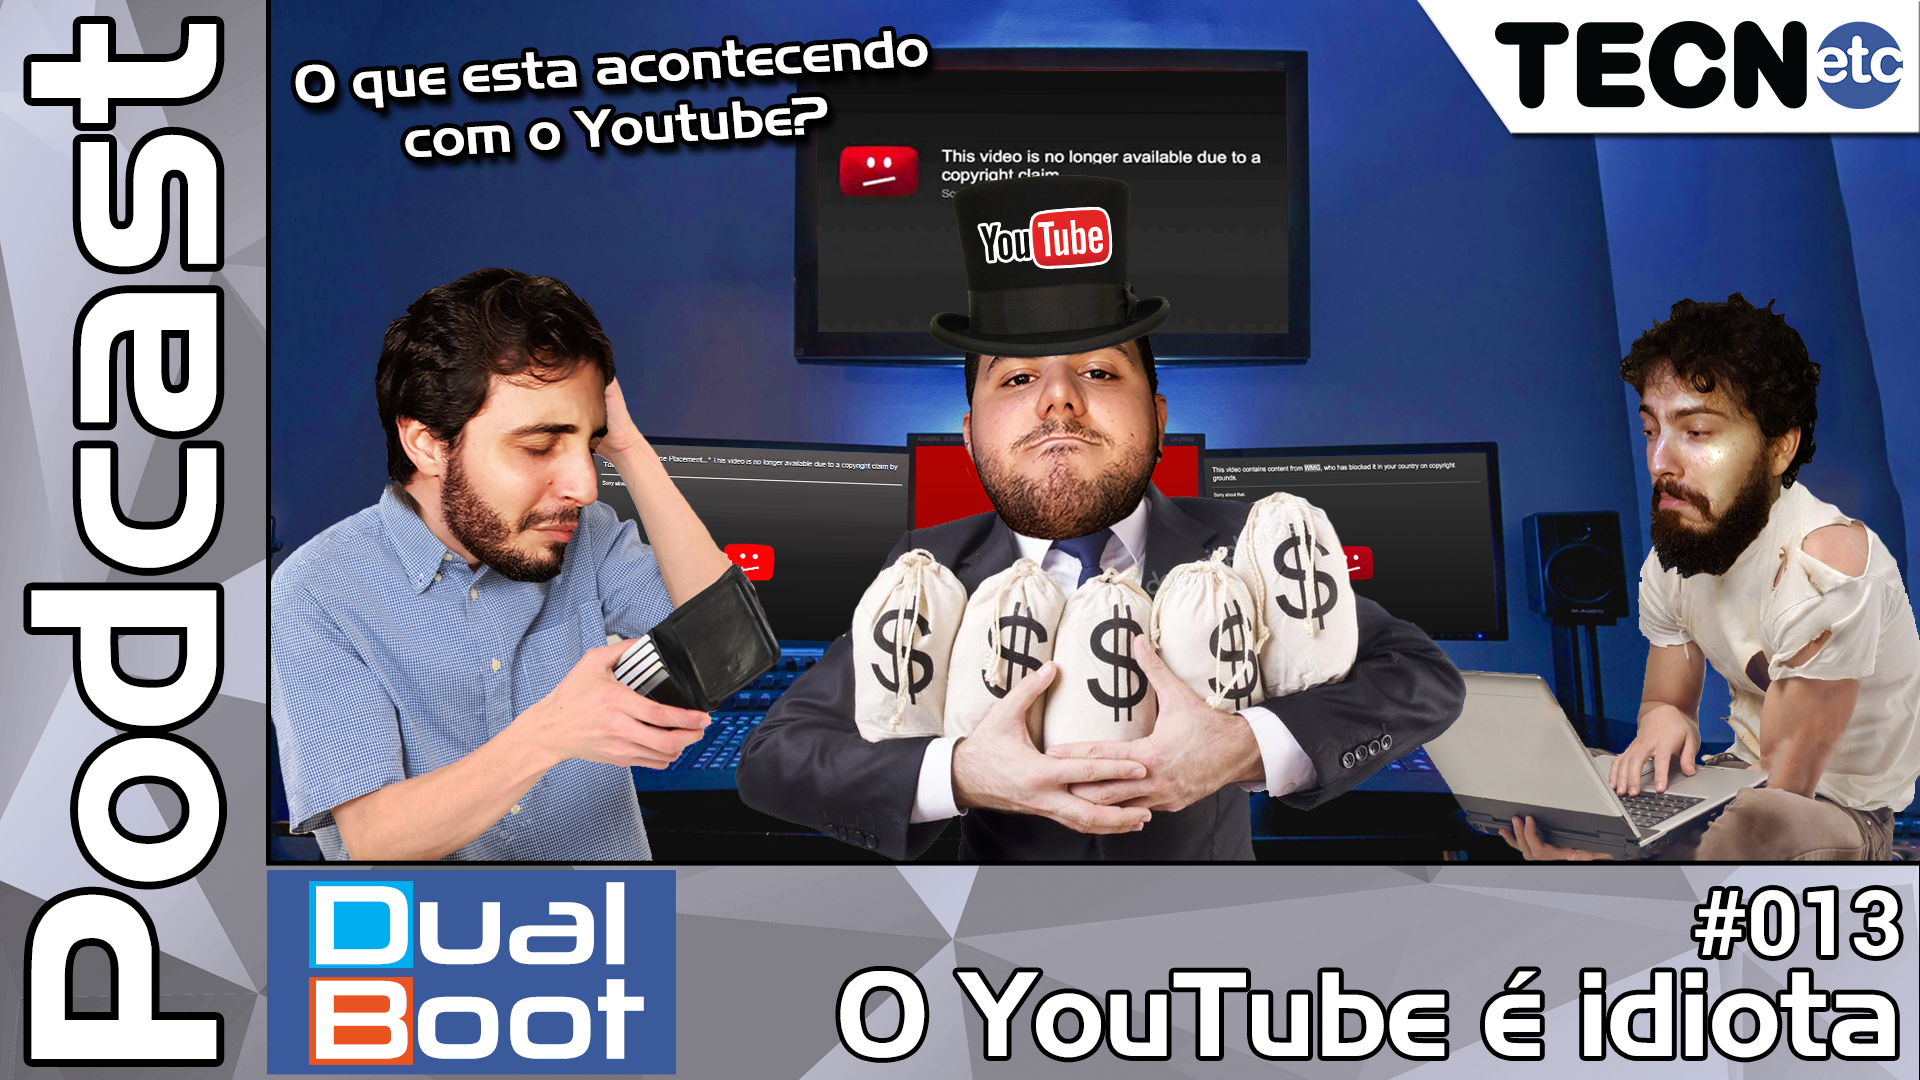 Dual Boot #013: O YouTube é idiota – Podcast